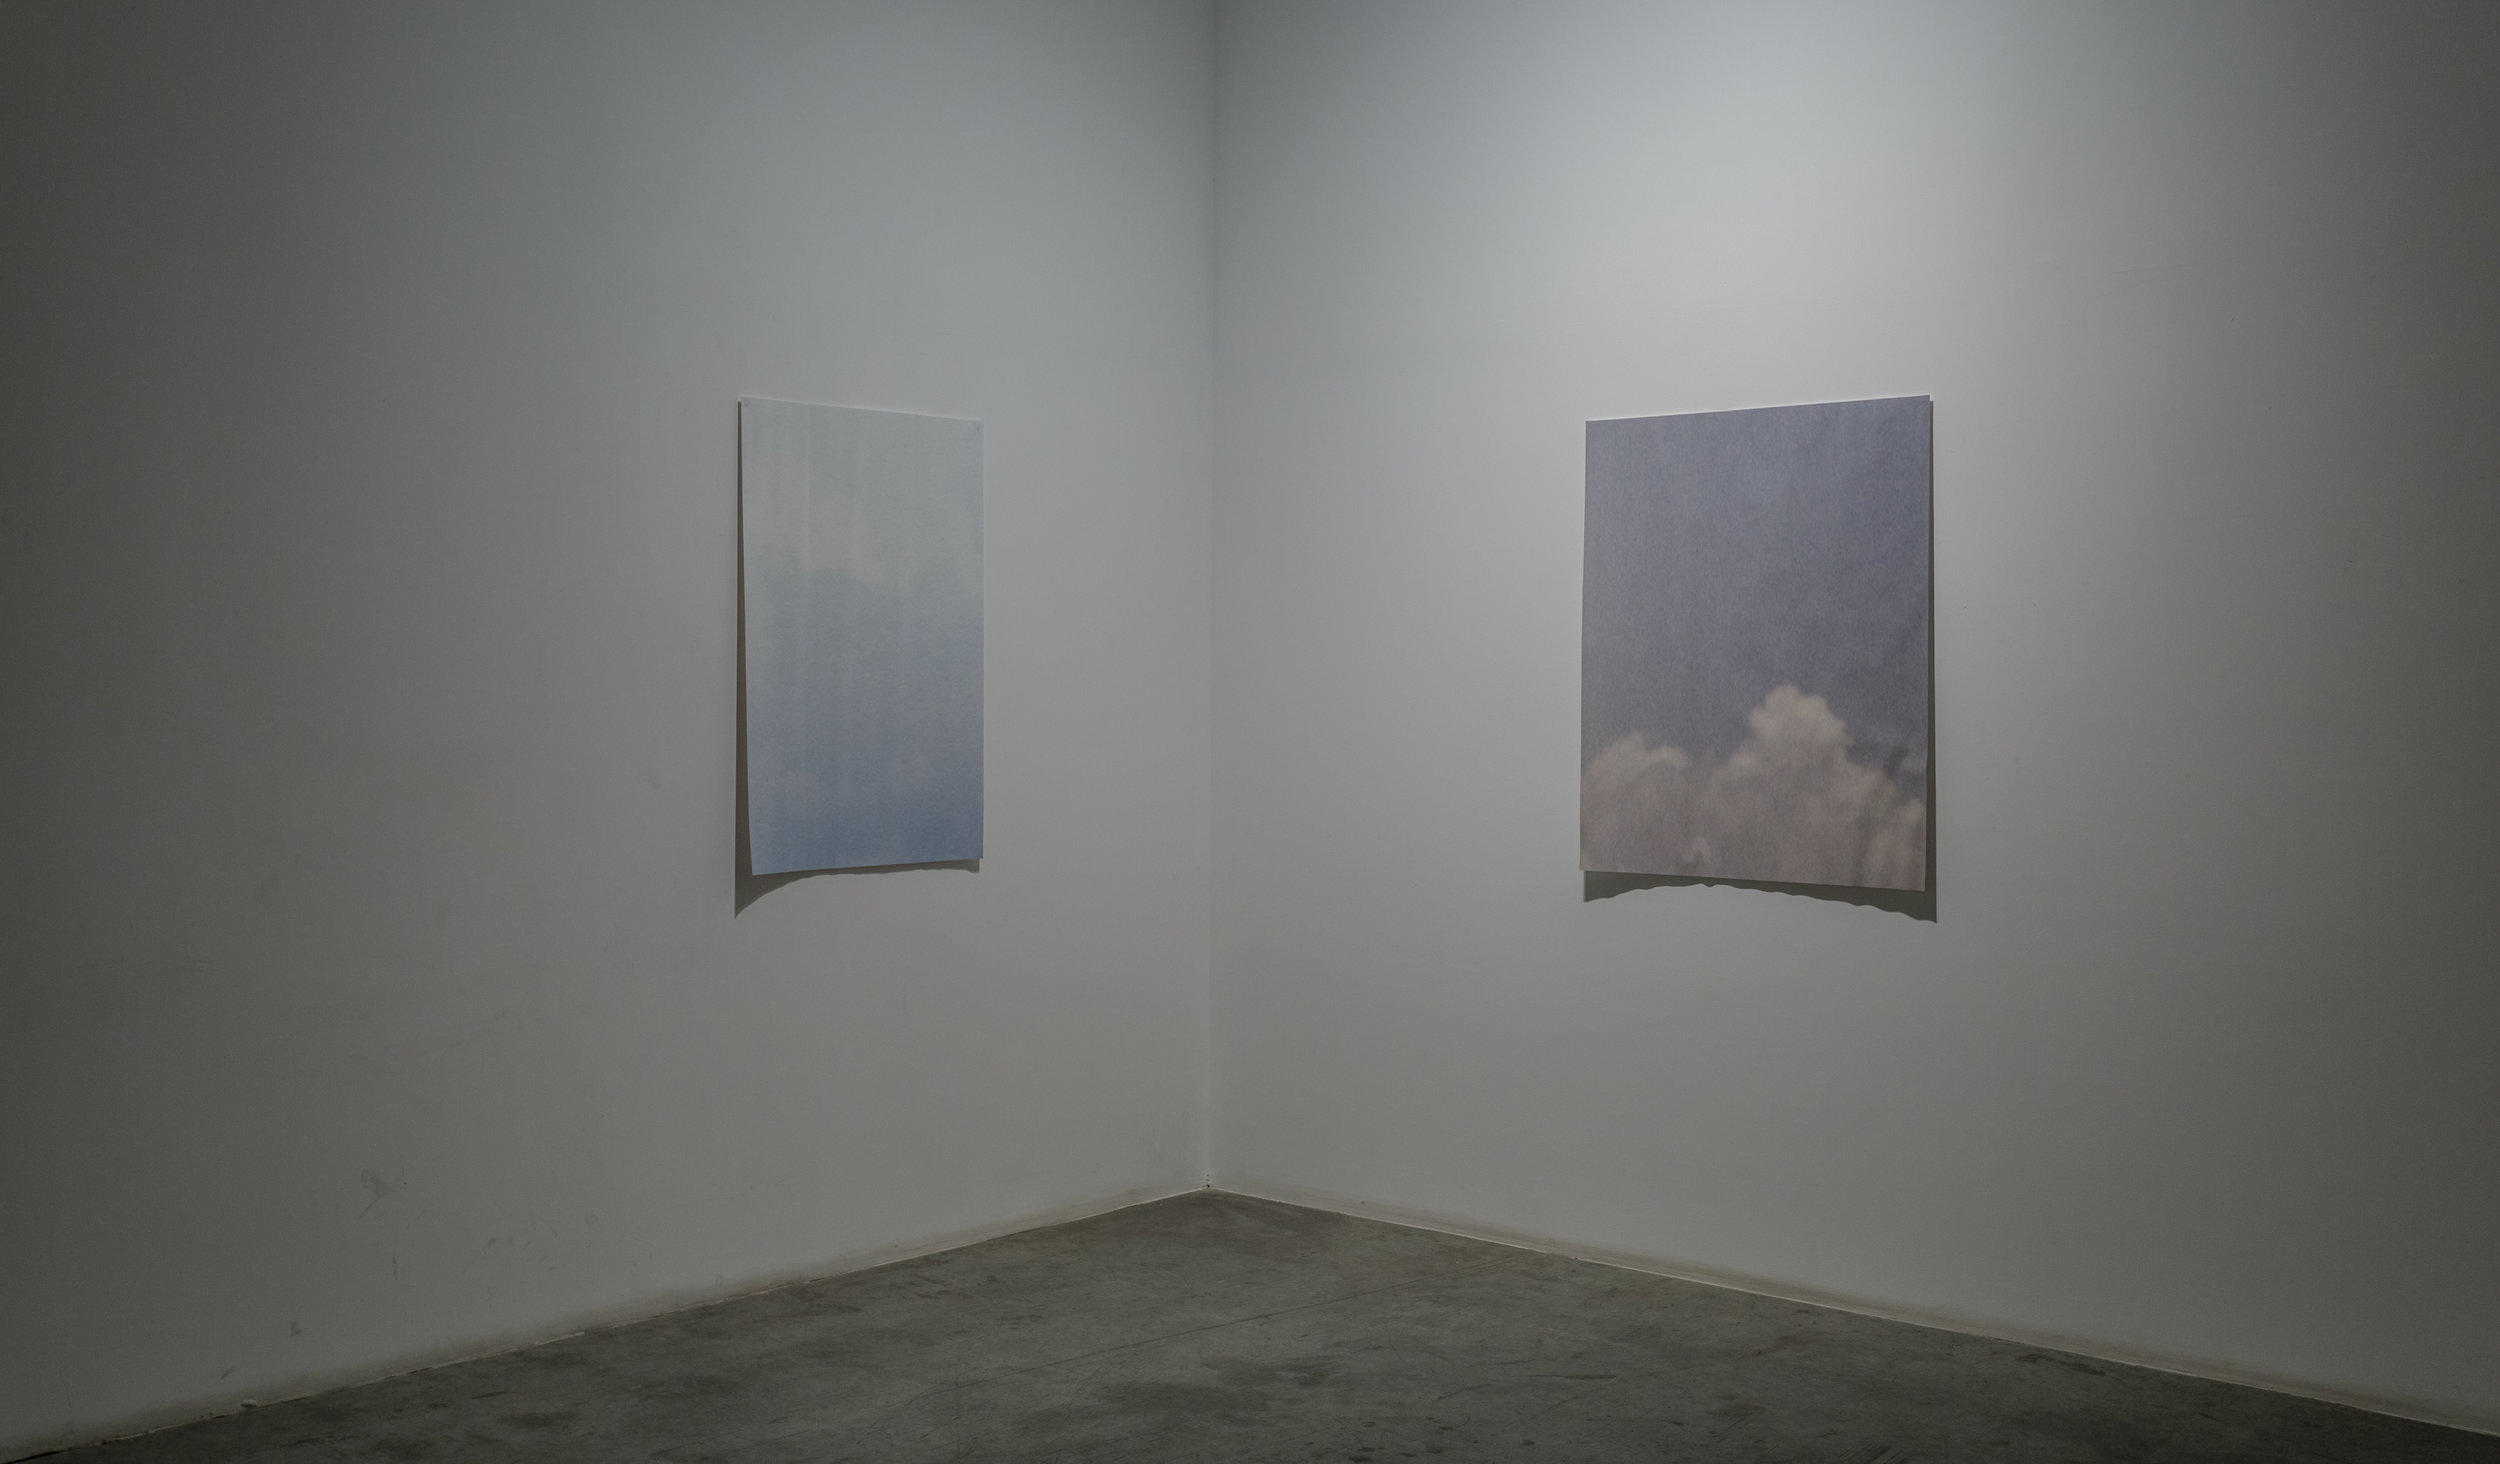 Stéphanie Saadé  The Sky is a Village 2016 Printed photographs left outside 115 x 78 cm and 115 x 95 cm Pieces of sky from childhood photographs are scanned and enlarged to the size of the artist's studio's windows. The marks left by the rain, wind and air reactivate them today.